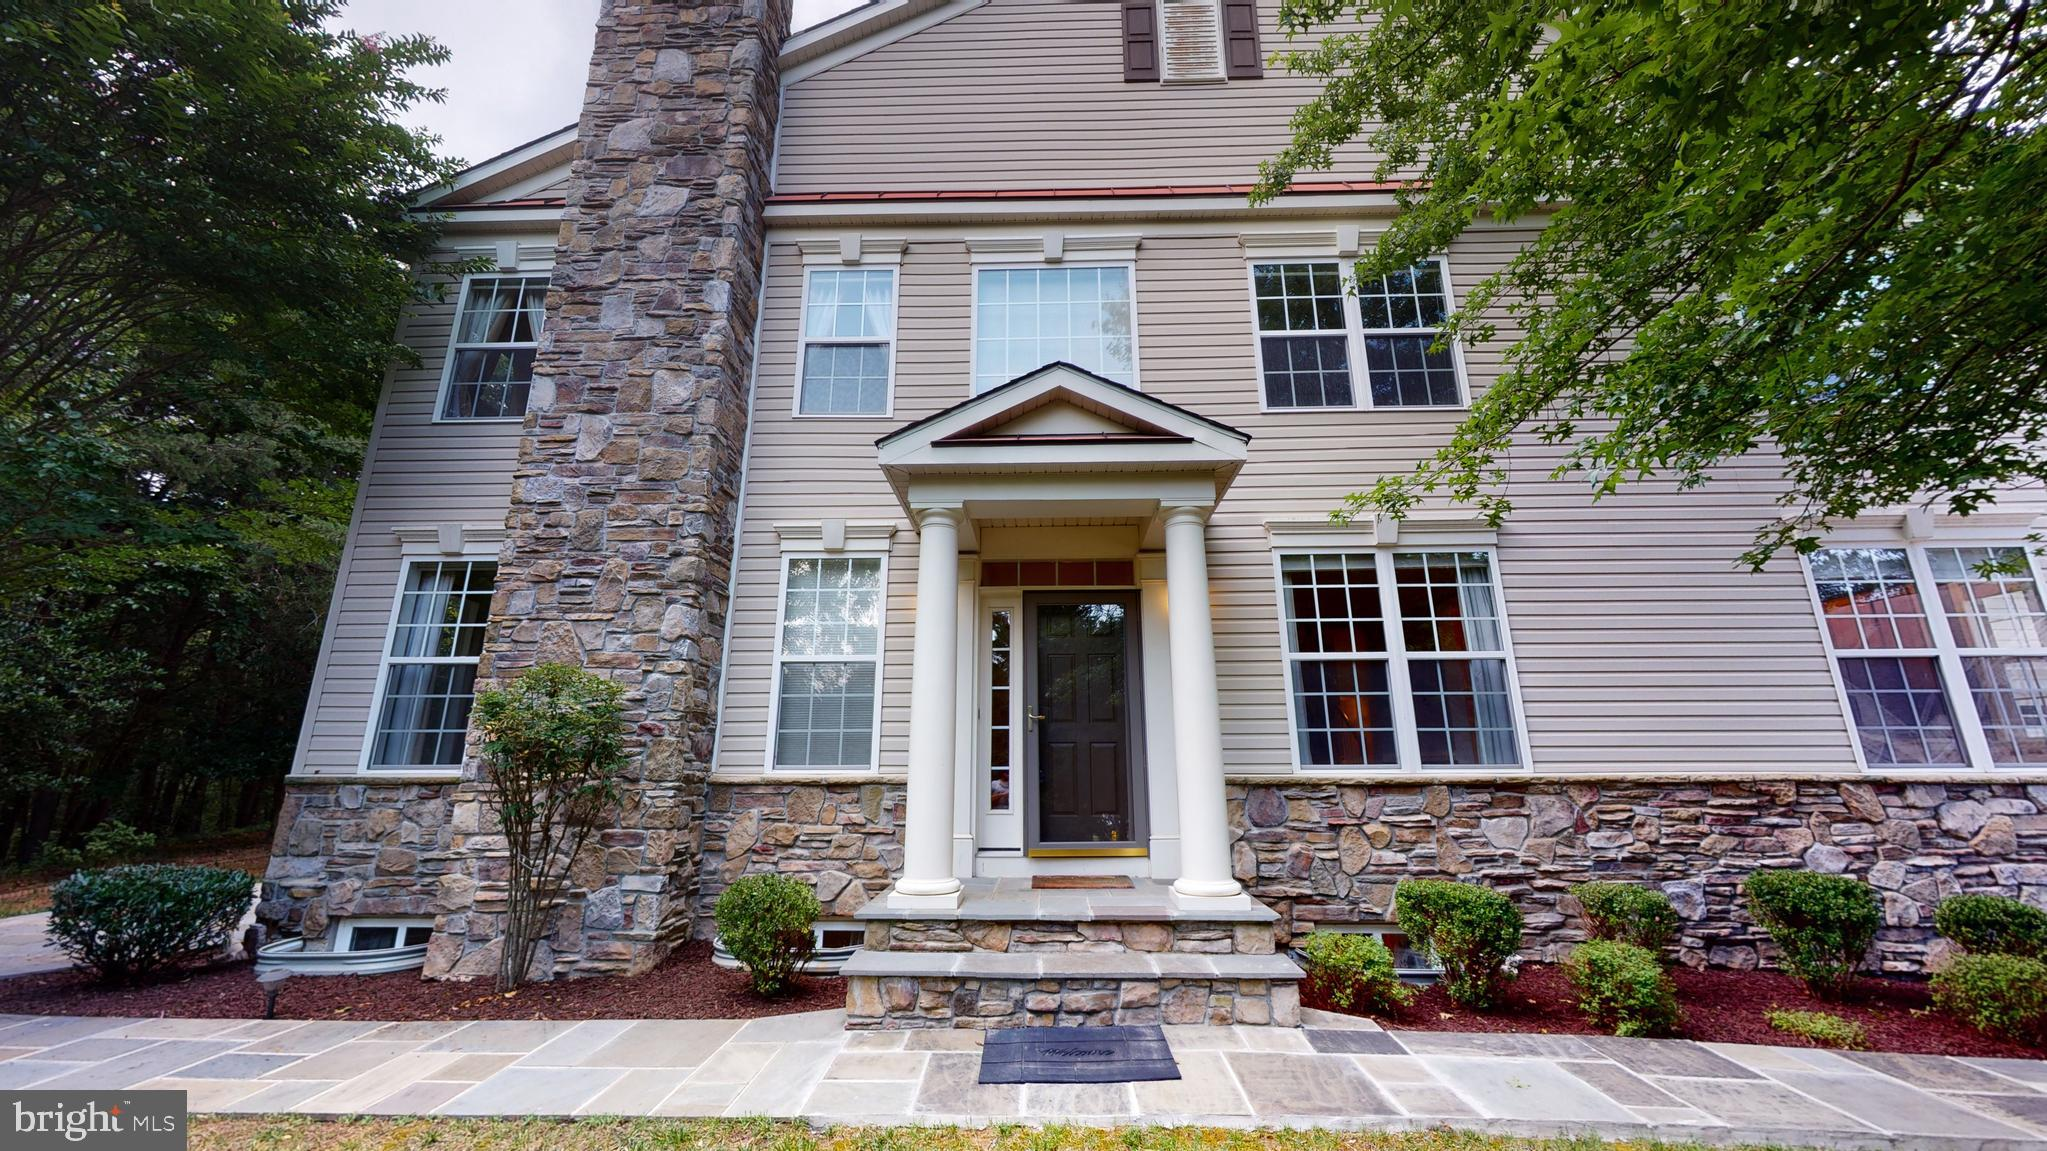 MUST SEE Luxurious End unit, Villa Style town home in the highly desired Piney Orchard area of Odenton.  This beautiful home features 4 Bedrooms, 5 Baths, 2 car garage, and over 3,600 sqft of finished living space on a premium lot with no age restriction. Upgrades galore, this home has Gourmet Kitchen w/ Corian Countertops, Brand New SS appliances, fresh paint, beautiful hardwood floors, recessed lighting, crown molding, two gas fireplaces, and a new stone/patio walk walkway.  The main level features an owner~s suite with a full bath, living room, dining room, kitchen with island, a half bath and a walkout to the patio. Upstairs you have a second master suite with dual vanities, sep tub and shower combo, large walk-in closet and two additional bedrooms and a family sitting area. The finished basement features, full bath, stacked stone fireplace, a large open area and additional storage space for the family.   The Home backs to woods leading to a nature preserve, with easy access to walkways and jogging paths.  The community features 3 outdoor swimming pools, heated indoor pool, hot tub, fitness center, tennis courts, a community center with library and party room.  The community retail center includes a grocery store, several restaurants, coffee shops, salons and more!  Just minutes to Ft Meade and MARC Train, with easy access to DC and BWI.  Hurry, book a showing today and make this home yours, this one will not last!